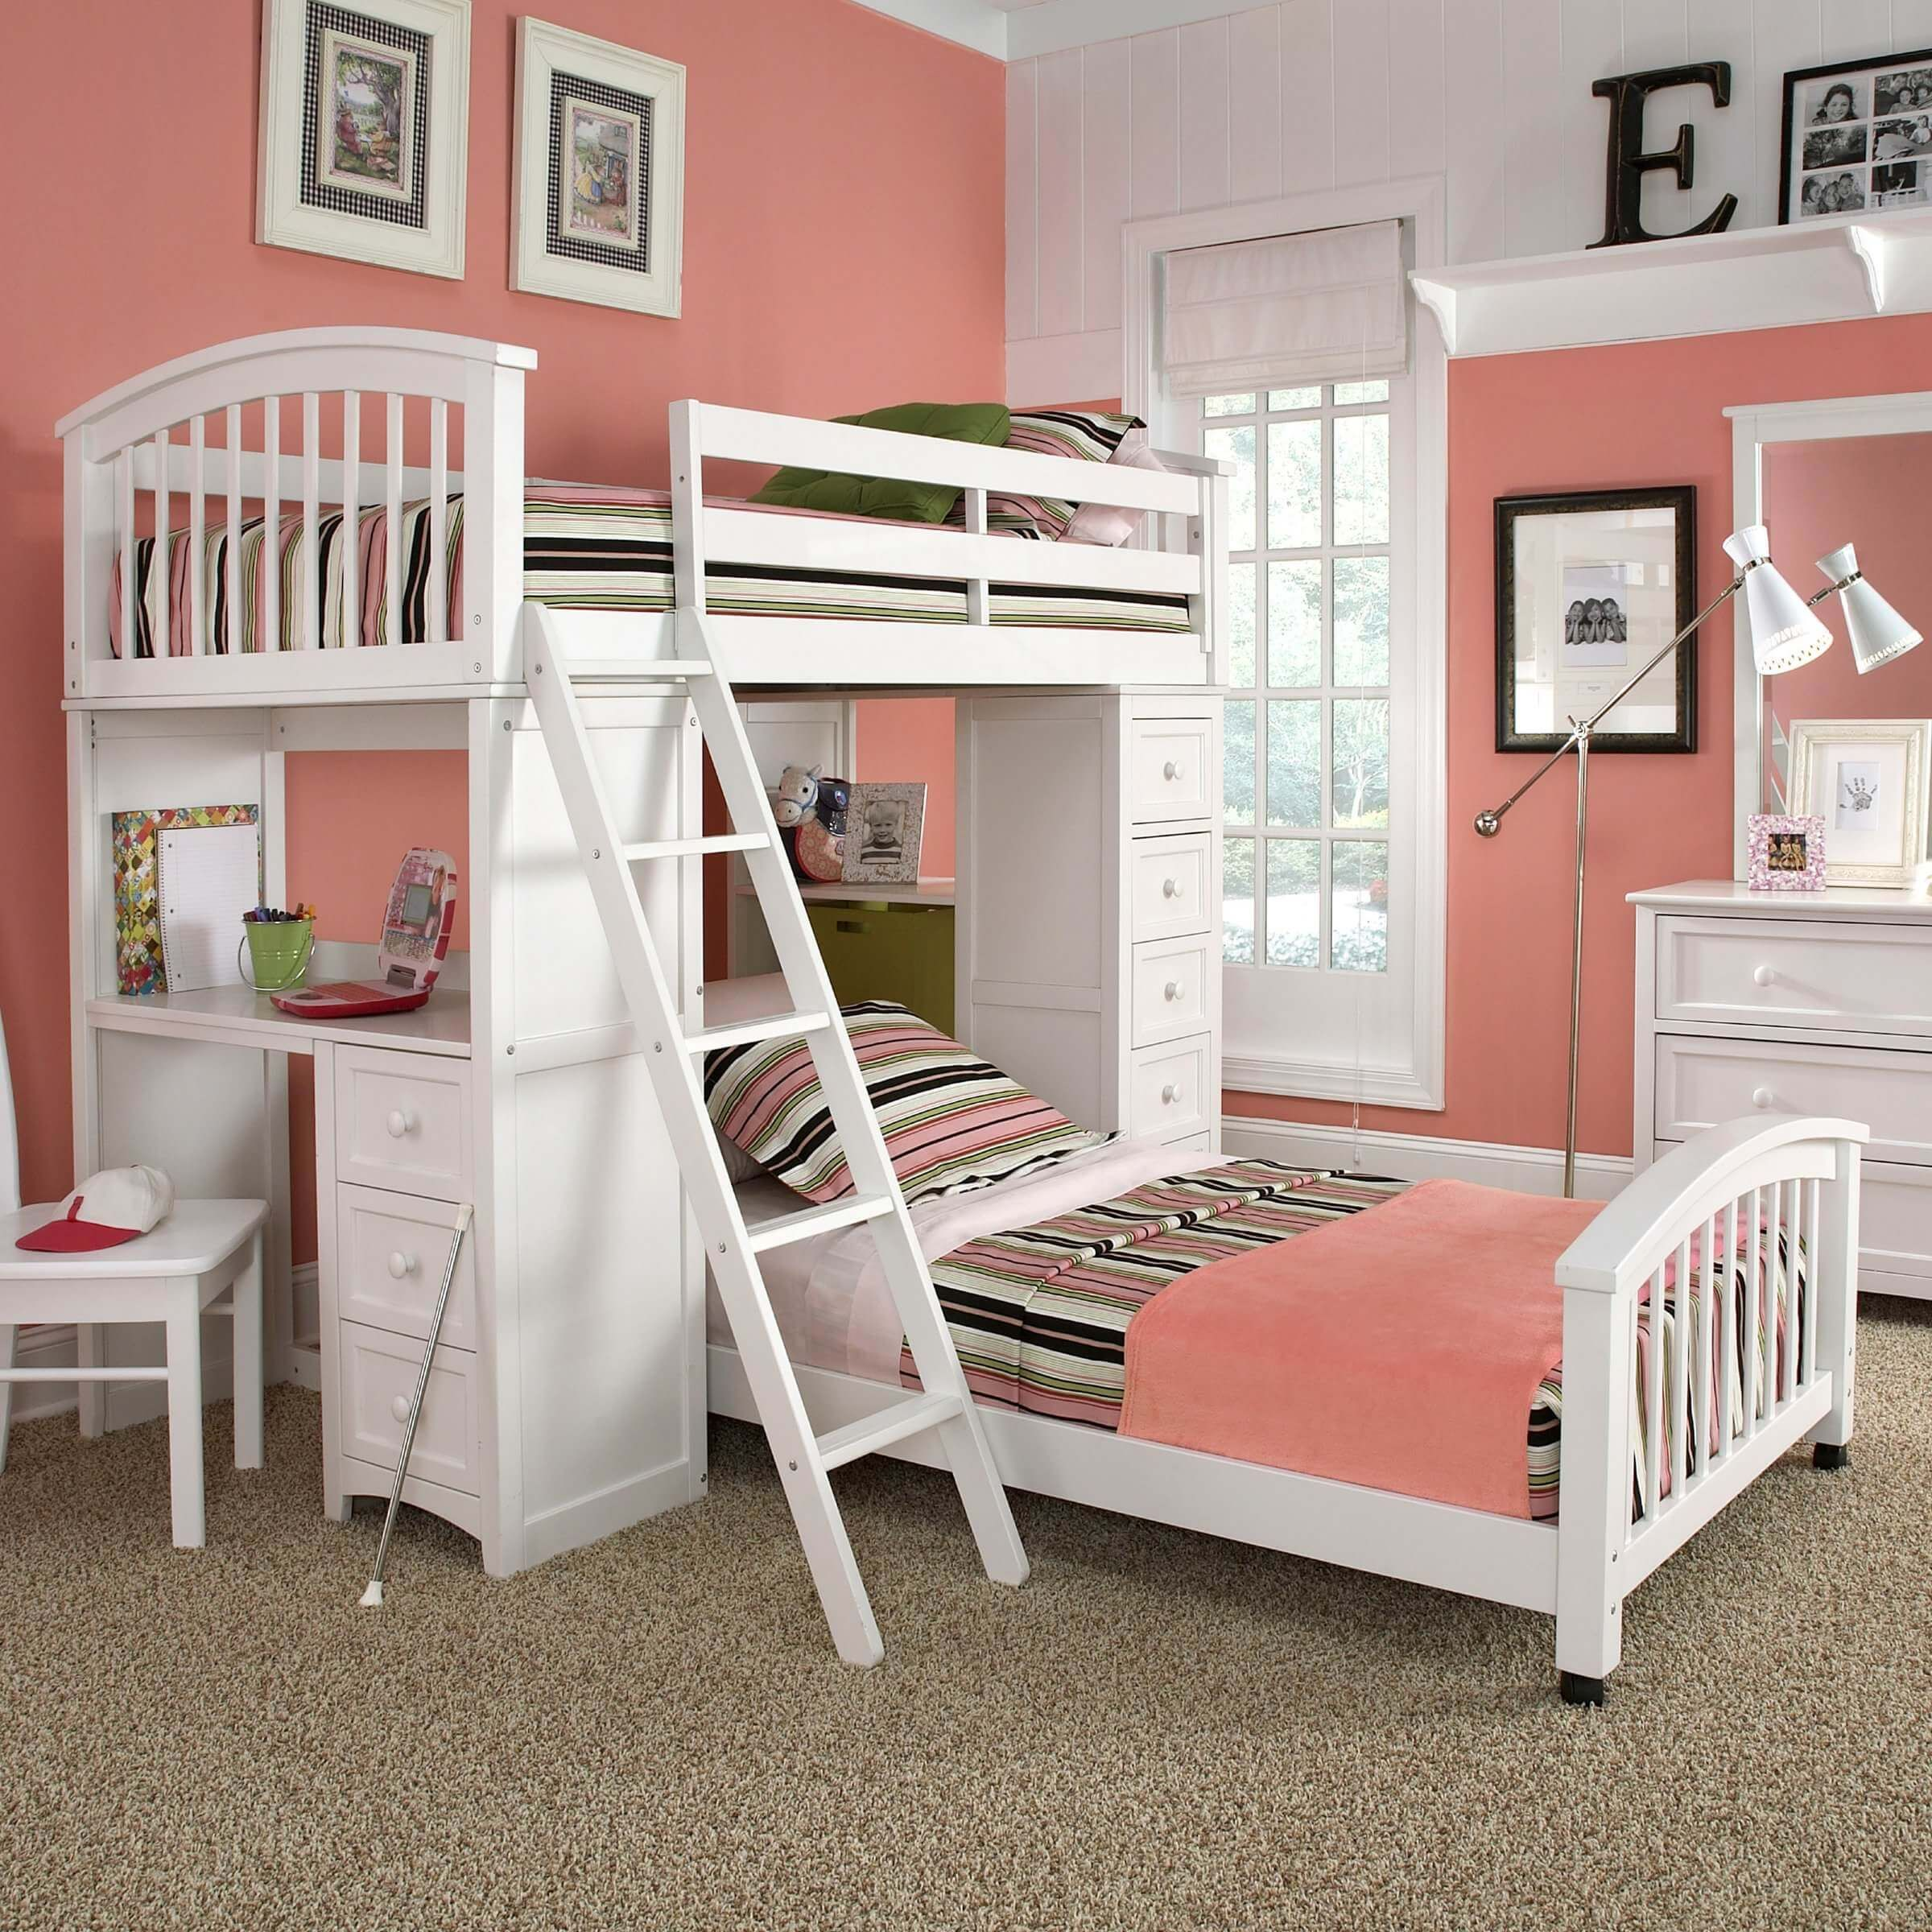 along faux white dressing kids bedroom wooden with sheet brick over accent under bunk side full table storage walls pillow desk stair floor bed chairs red twin beds